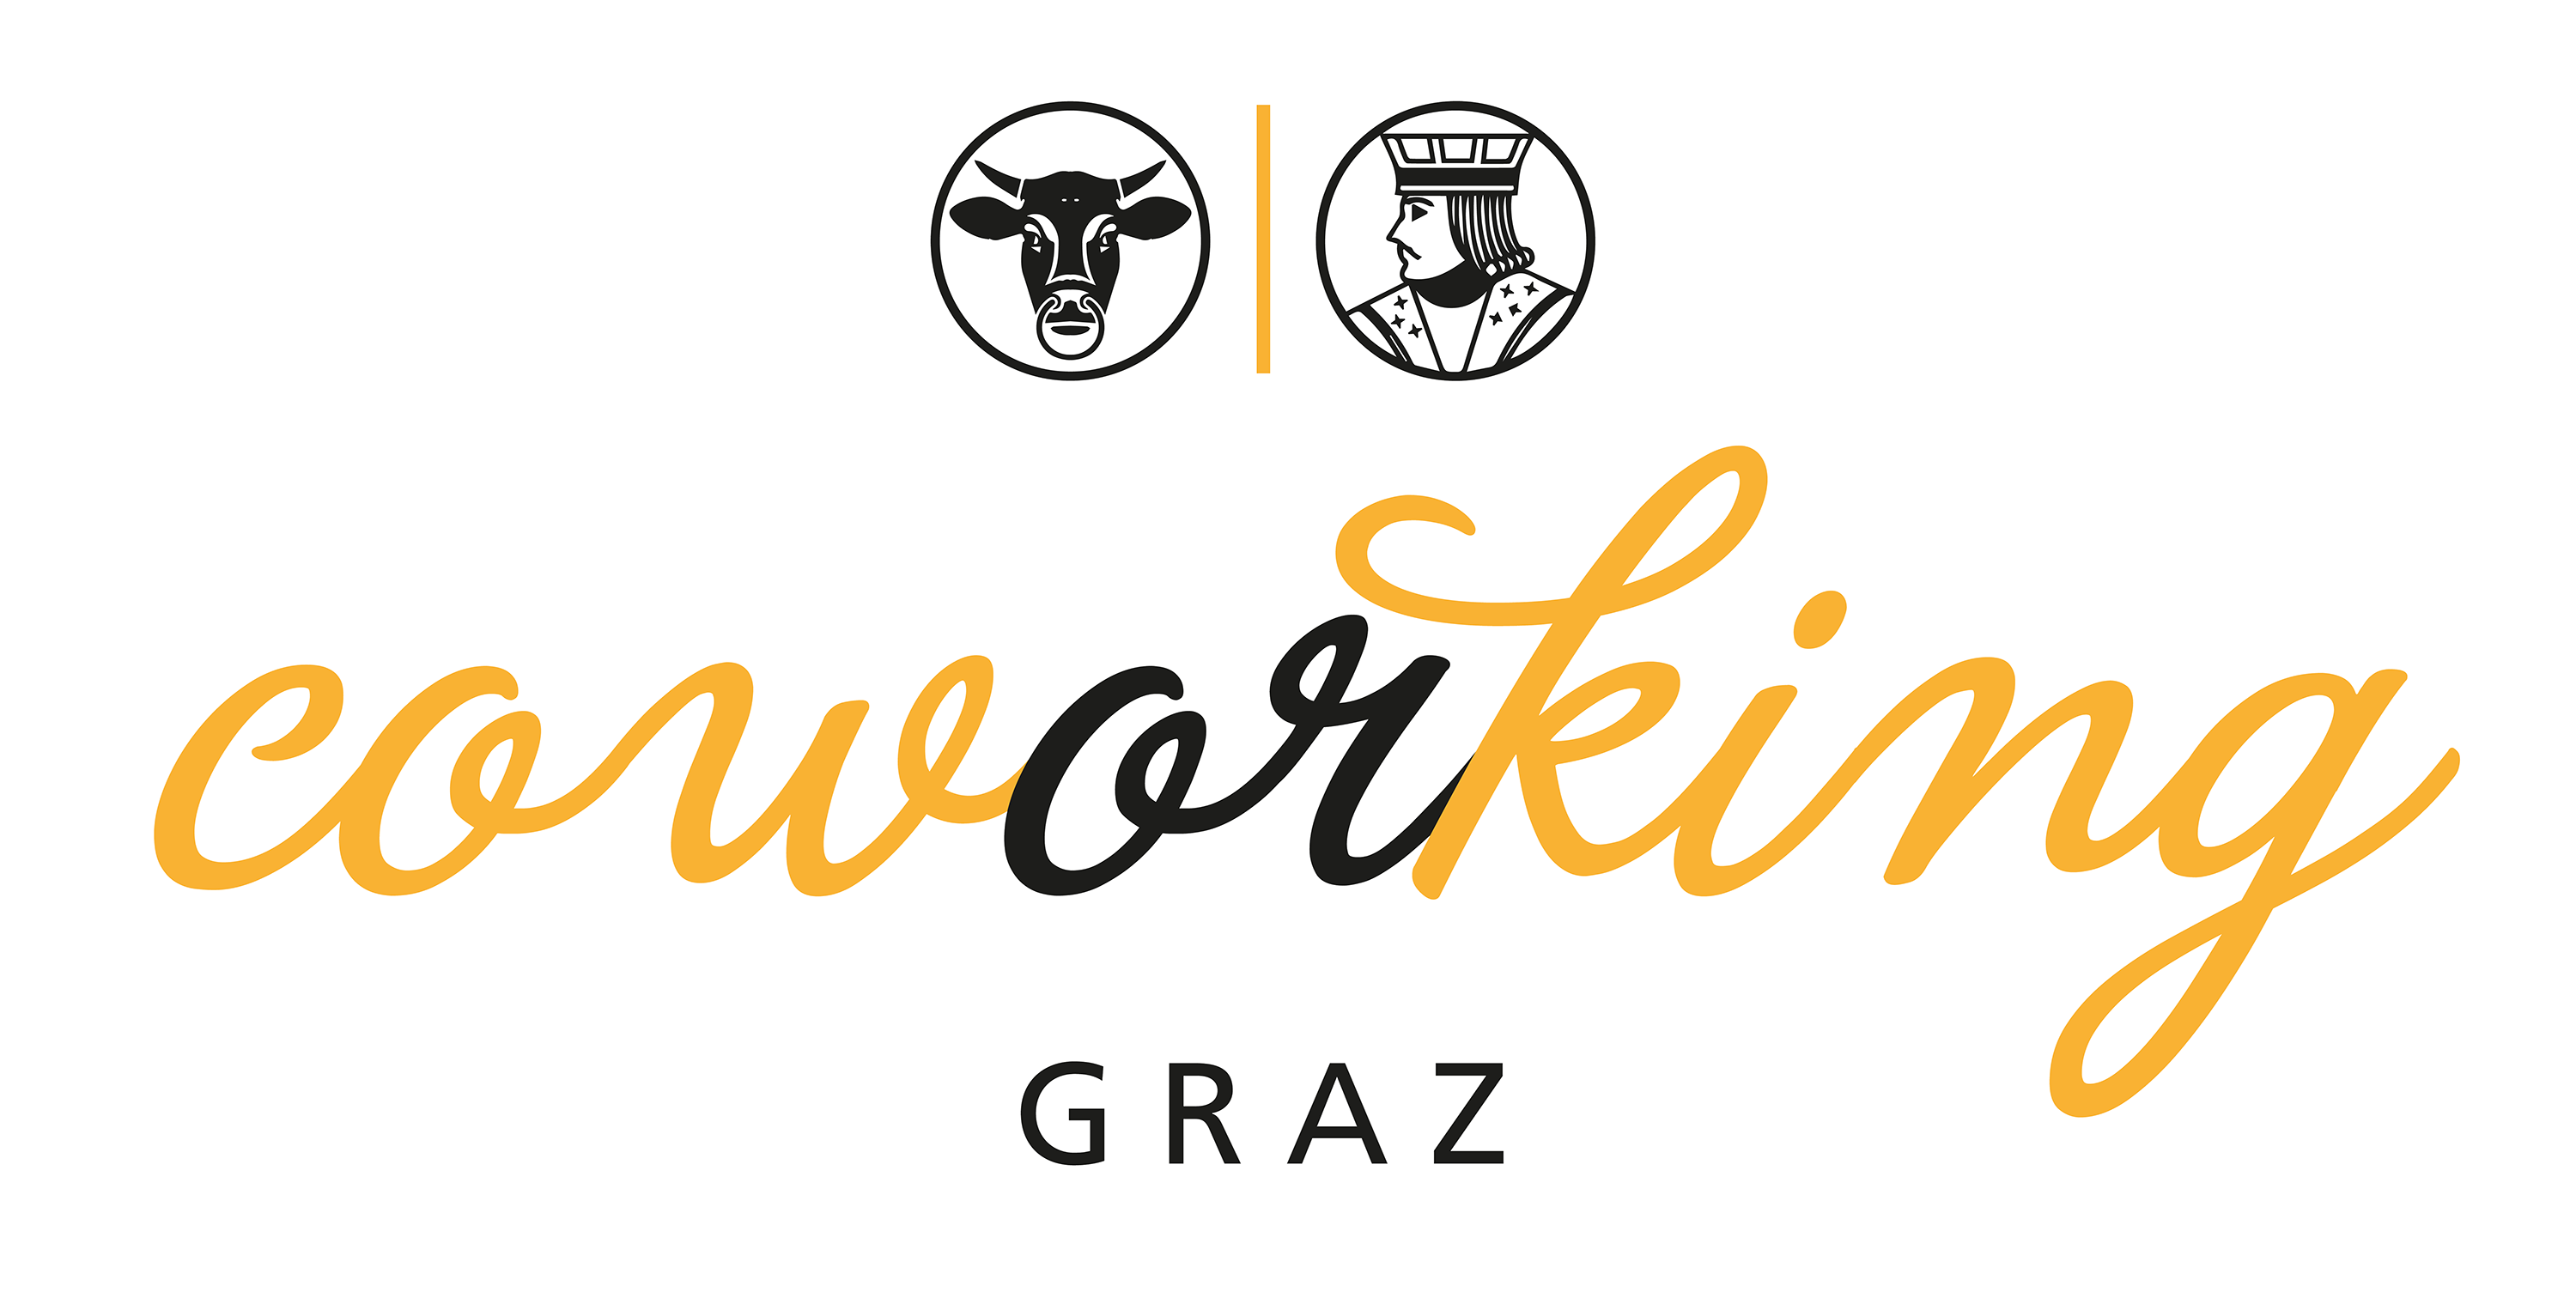 Coworking Graz – working together!